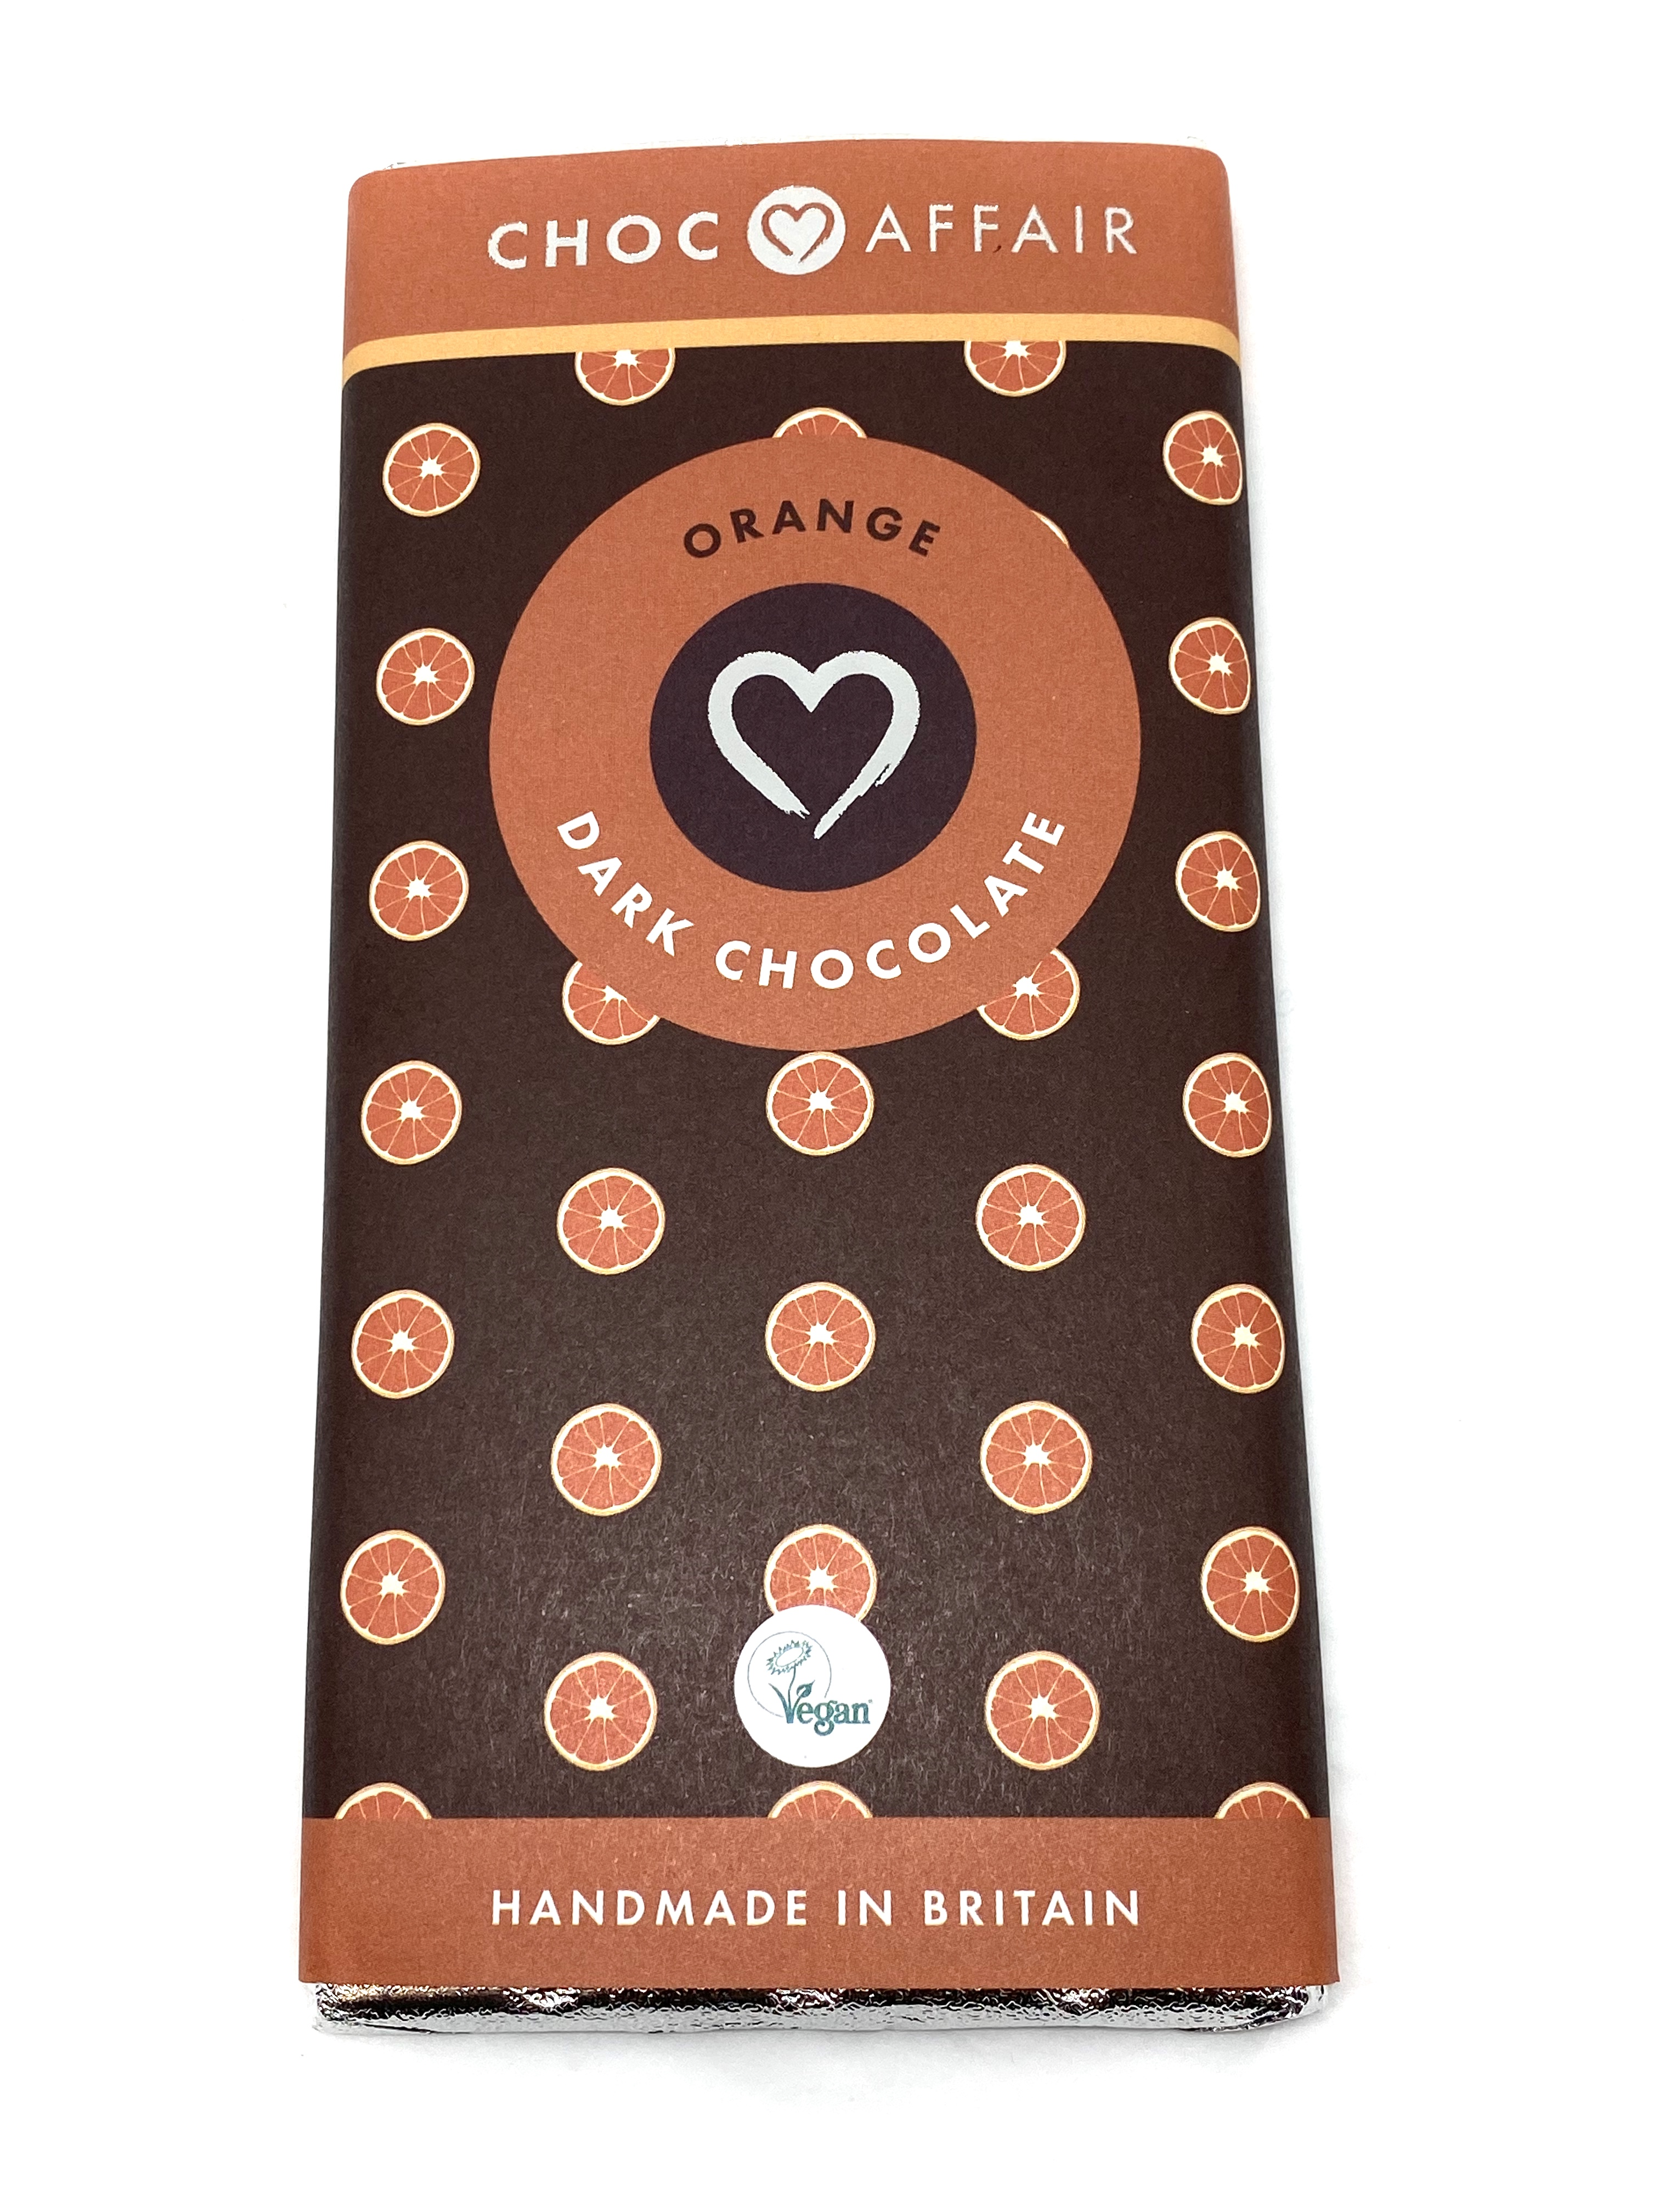 90g Flavoured Dark Chocolate Bars